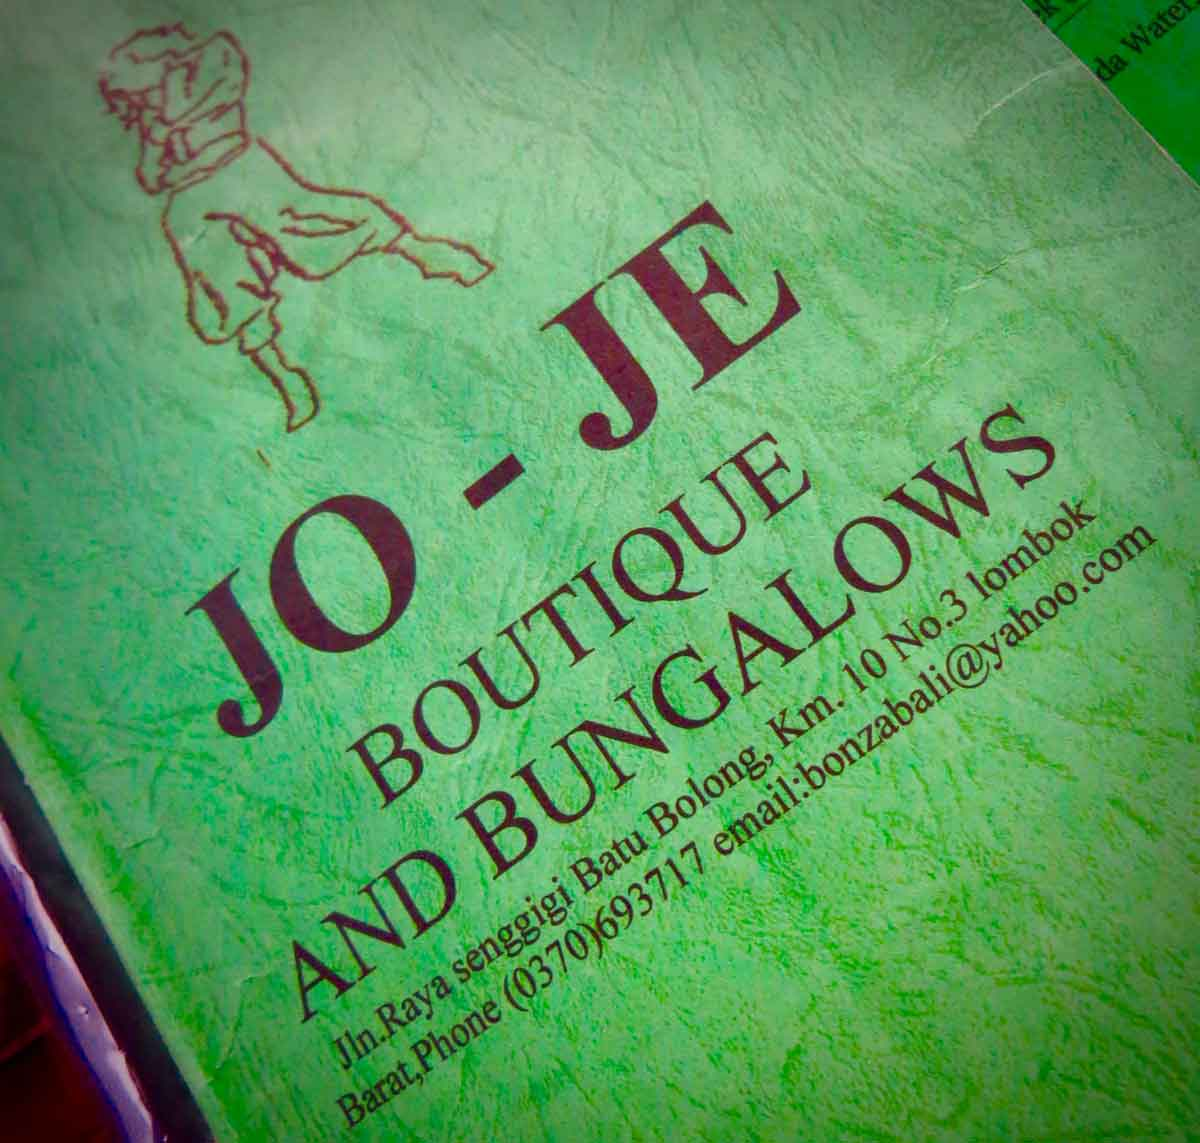 Jo Je Boutique and Bungalow